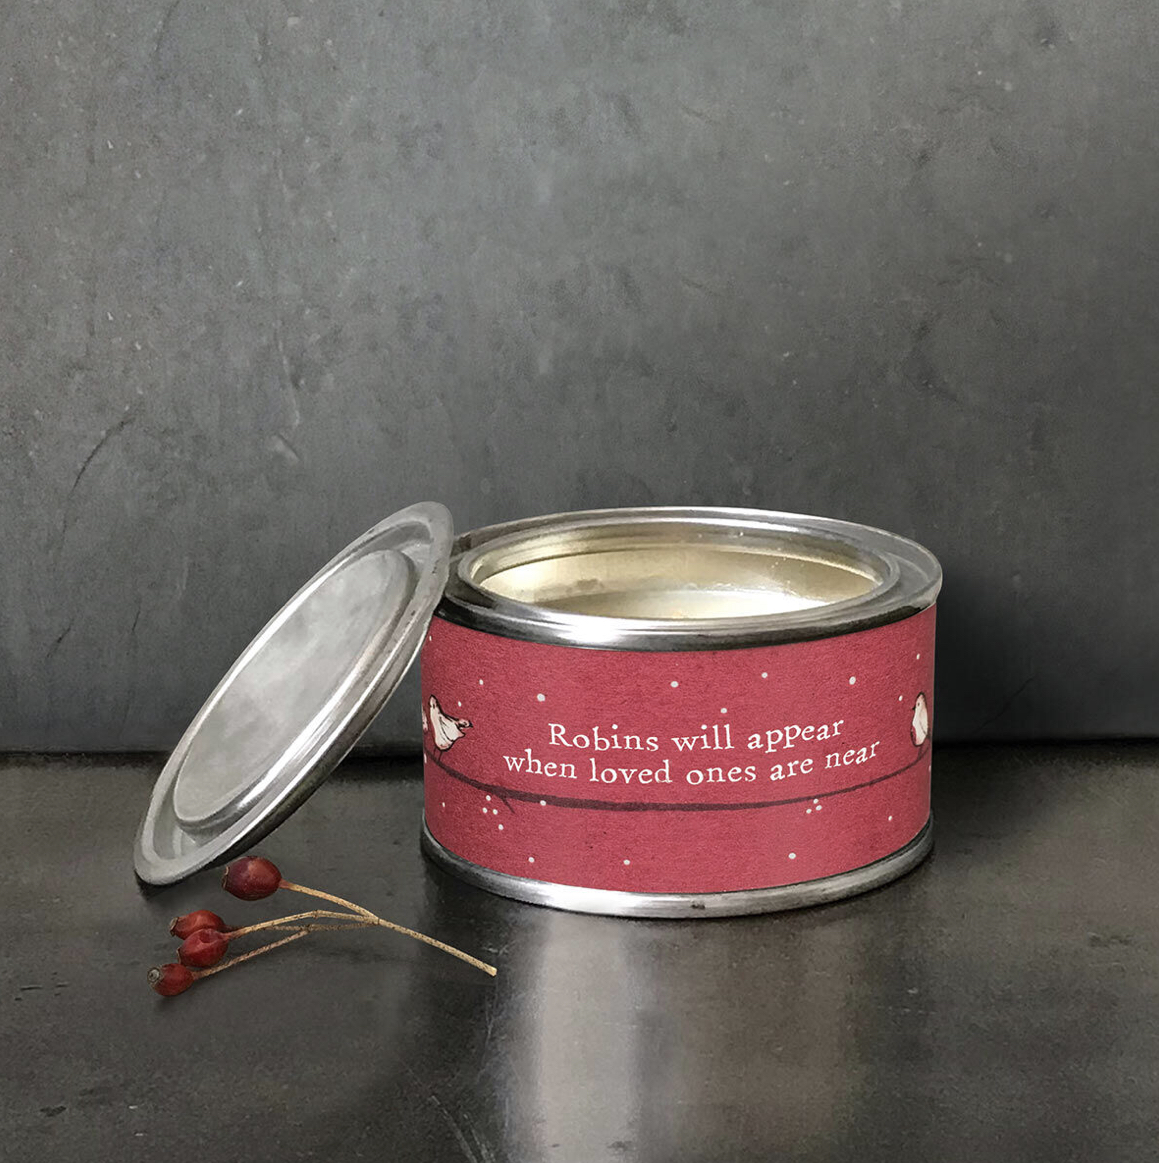 Robins will appear when loved ones are near, tinned scented candle by east of India